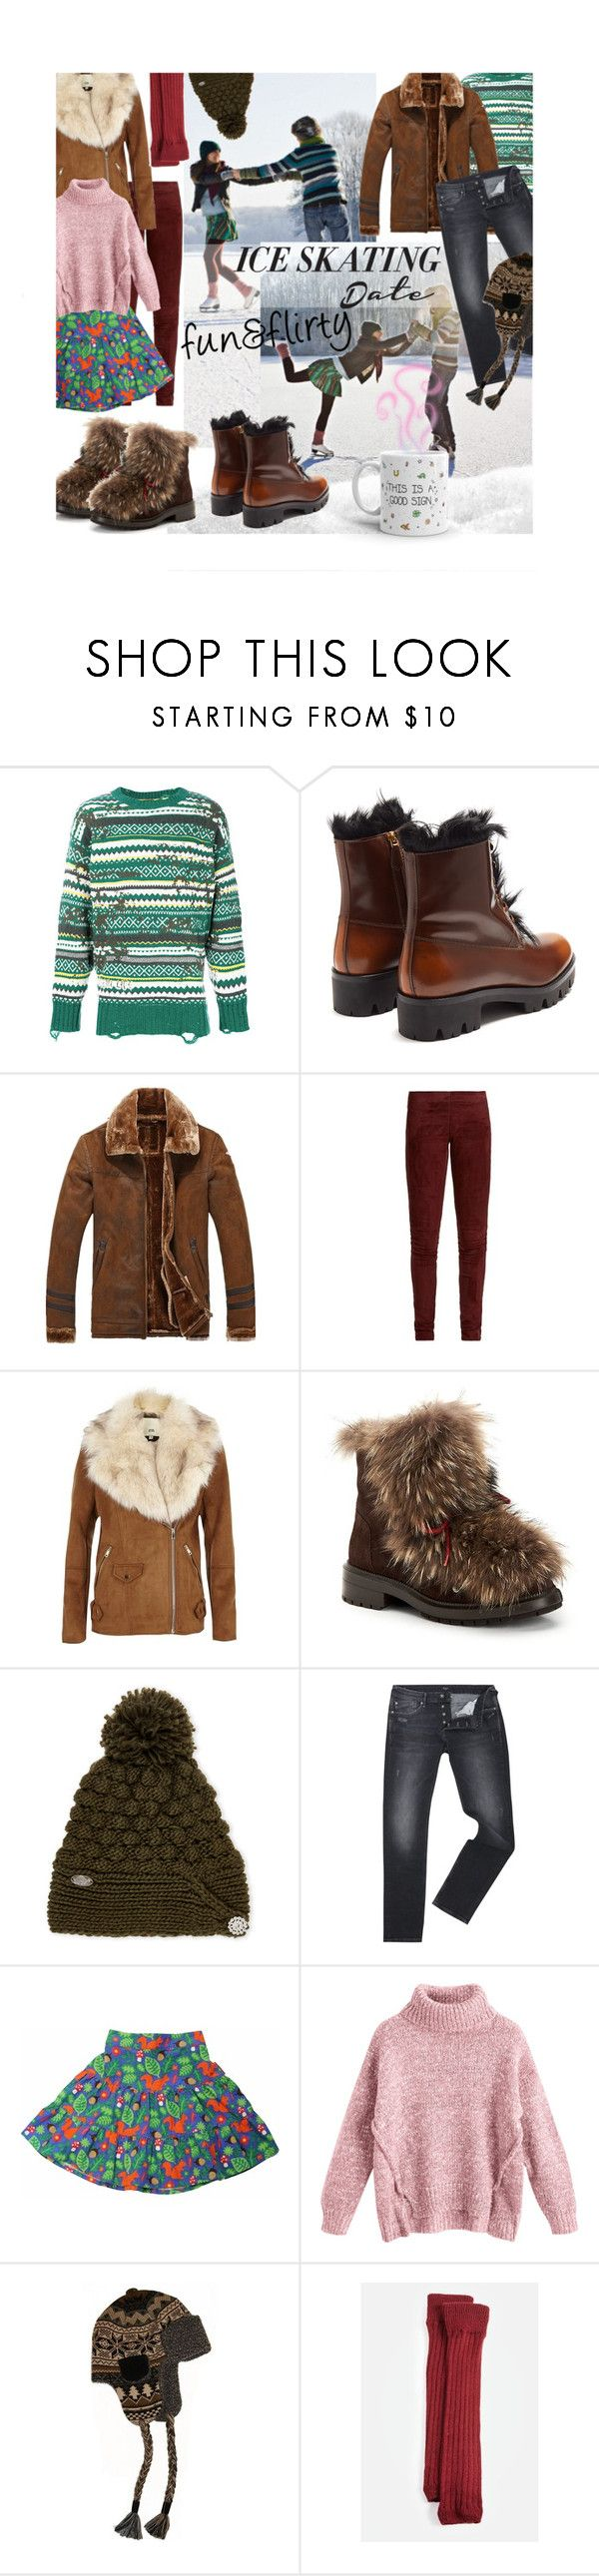 """fun & flirty date"" by mia-christine ❤ liked on Polyvore featuring Disney, Diesel, Prada, Joseph, River Island, Aquatalia by Marvin K., Turtle Fur, Pepe Jeans London, Toby Tiger and Muk Luks"